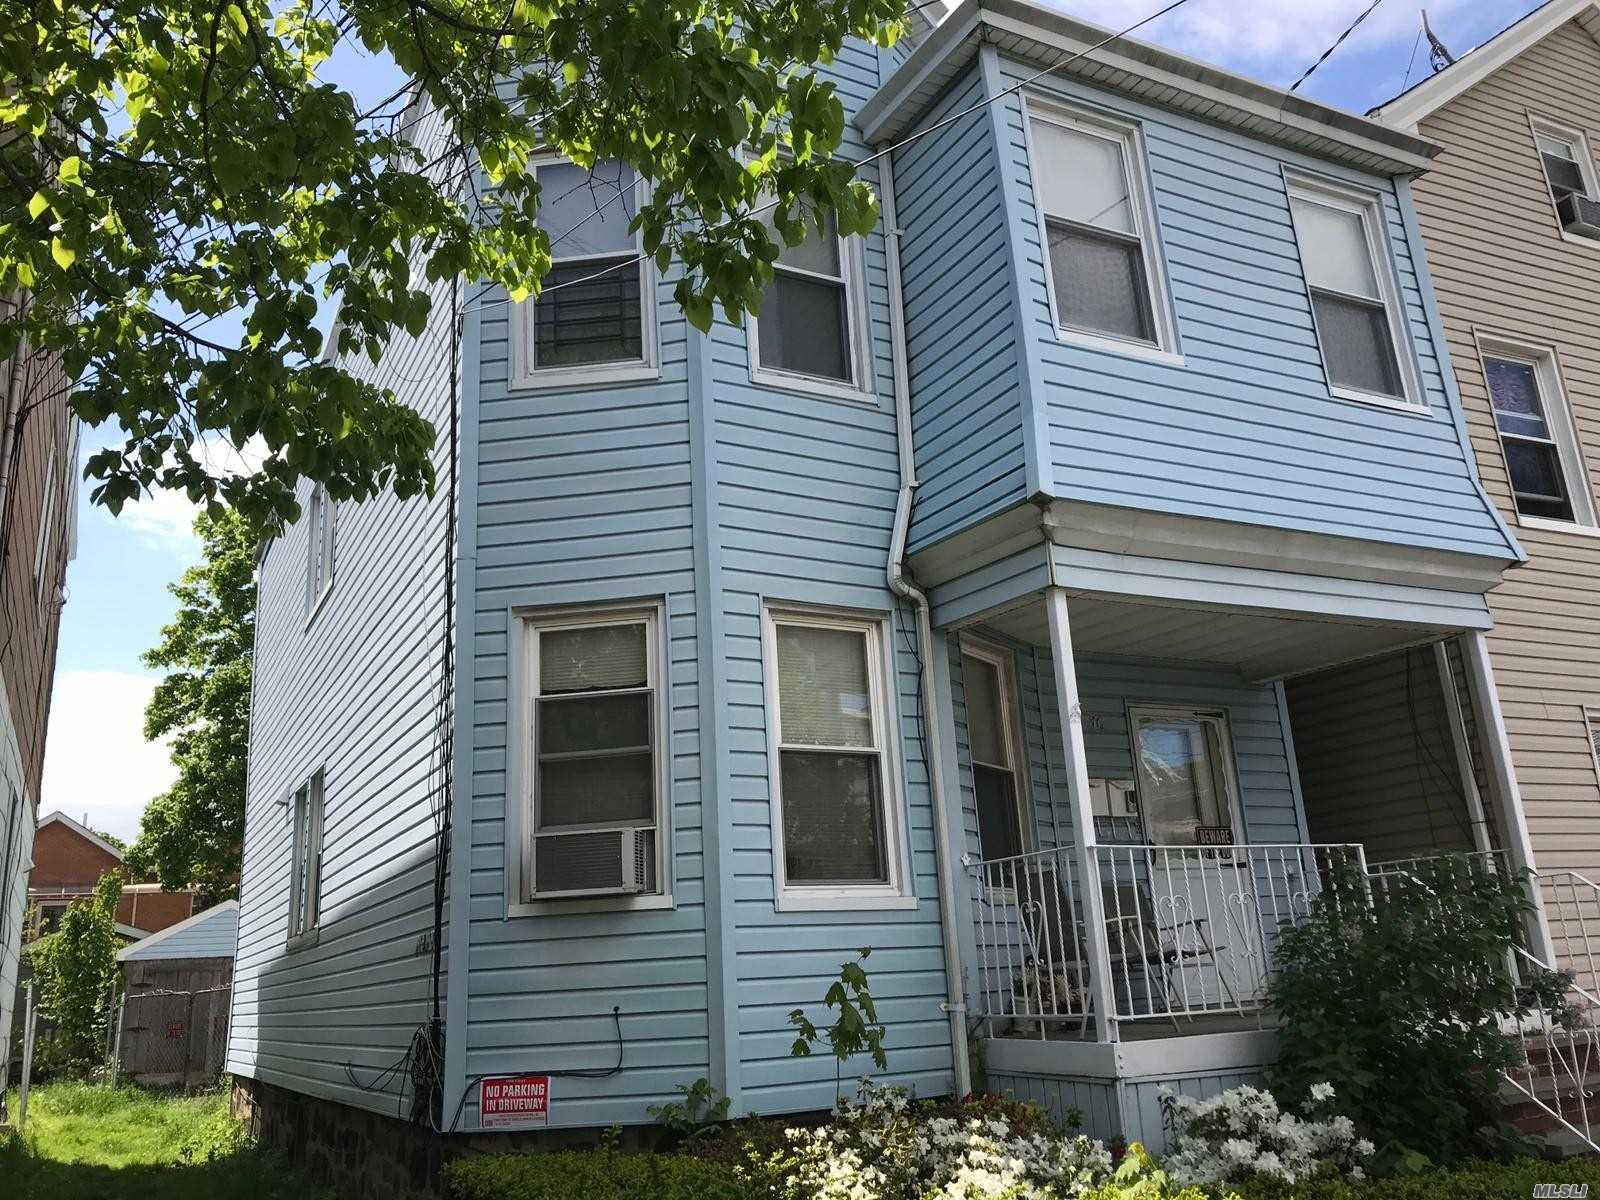 Detached 2 family with driveway, walking distant to Q25, Q20A, Q65 and public school and New York Sport Club. 3 bedroom 1 bath apartment on 2nd floor and 1st floor apartment has 2 bedroom 1 bath.